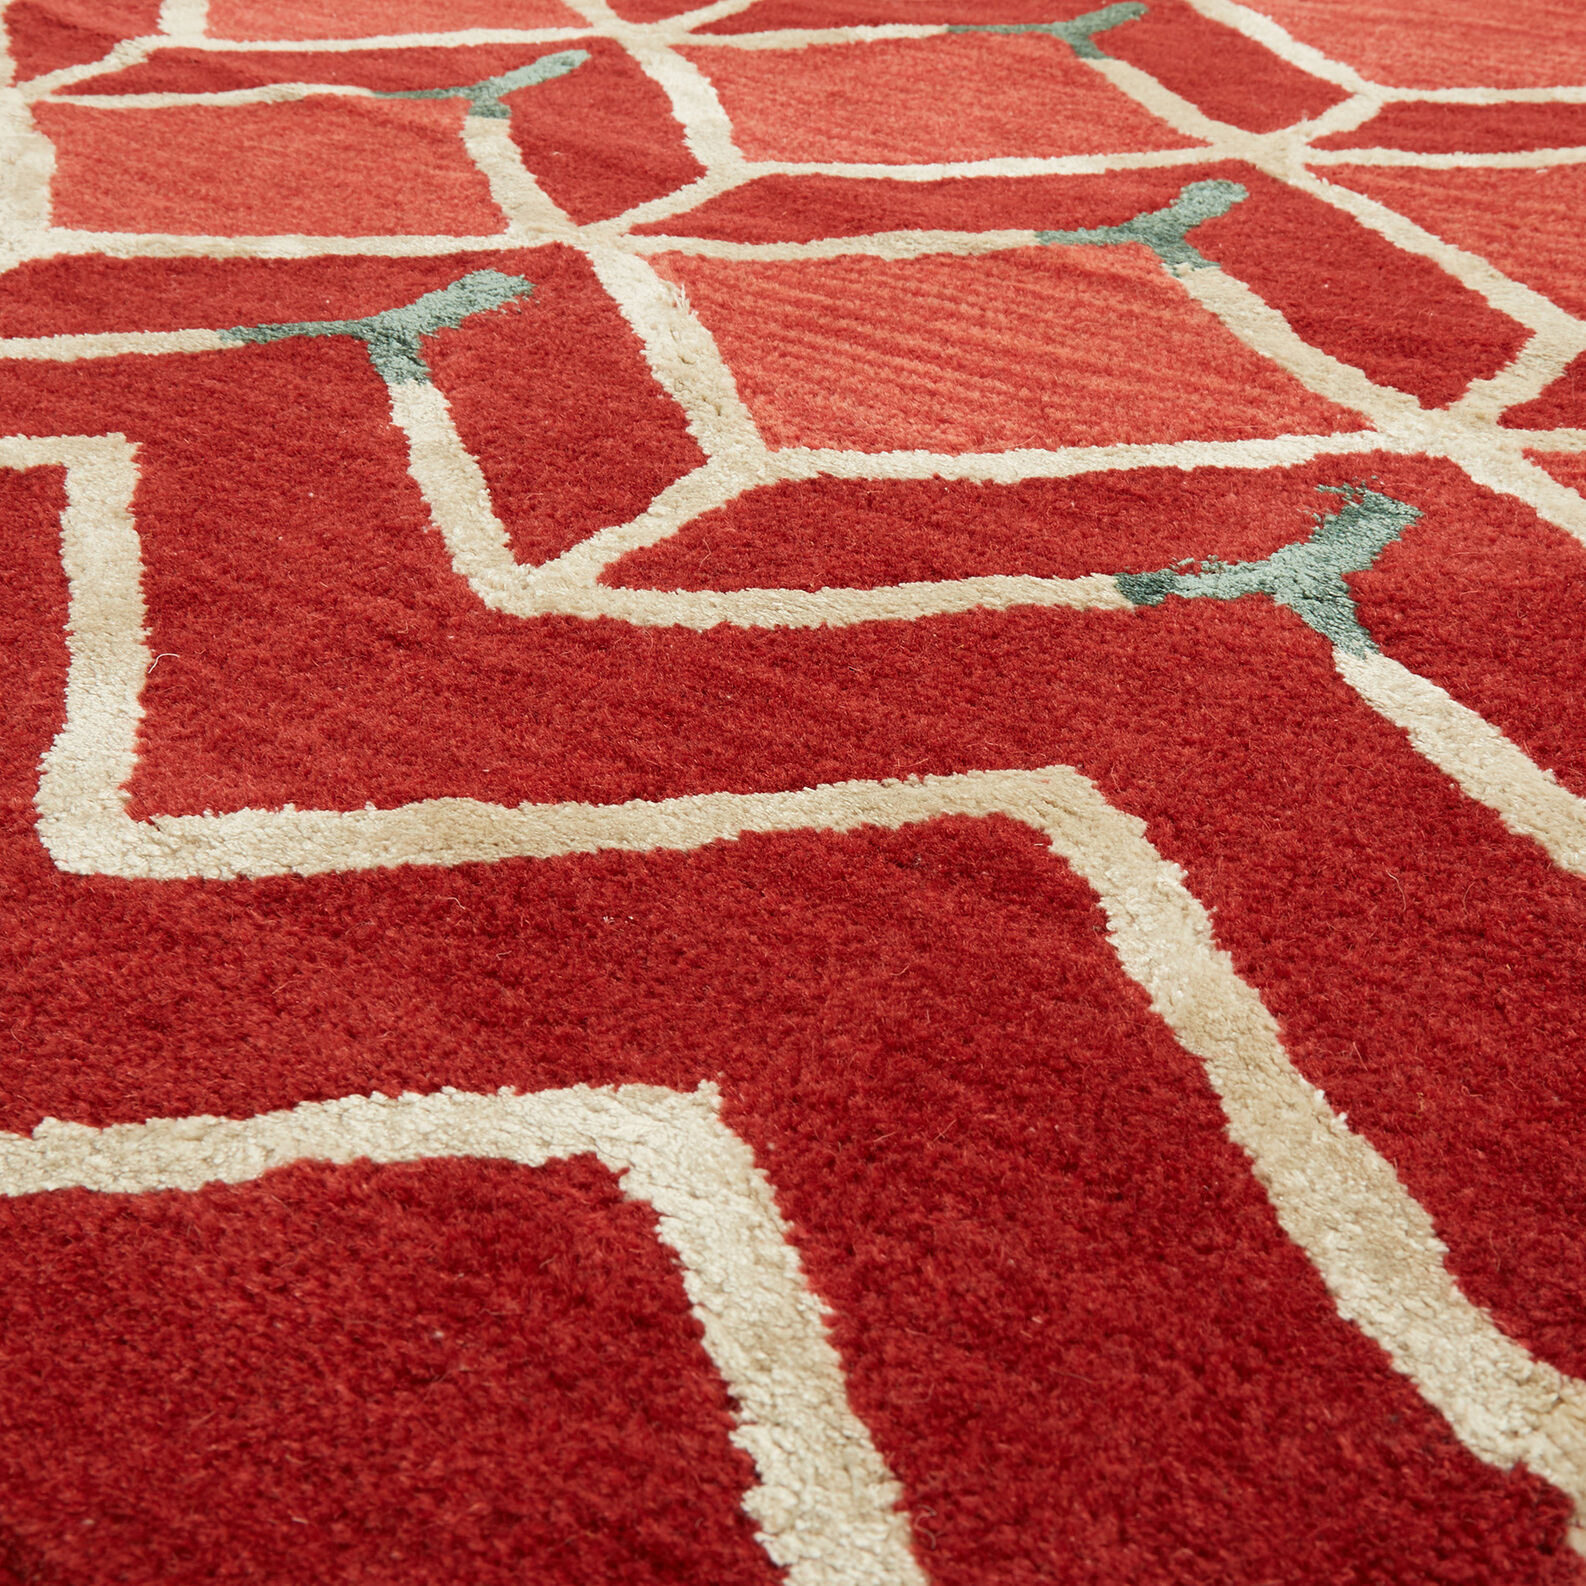 Tufted rug in viscose and cotton with geometric motif